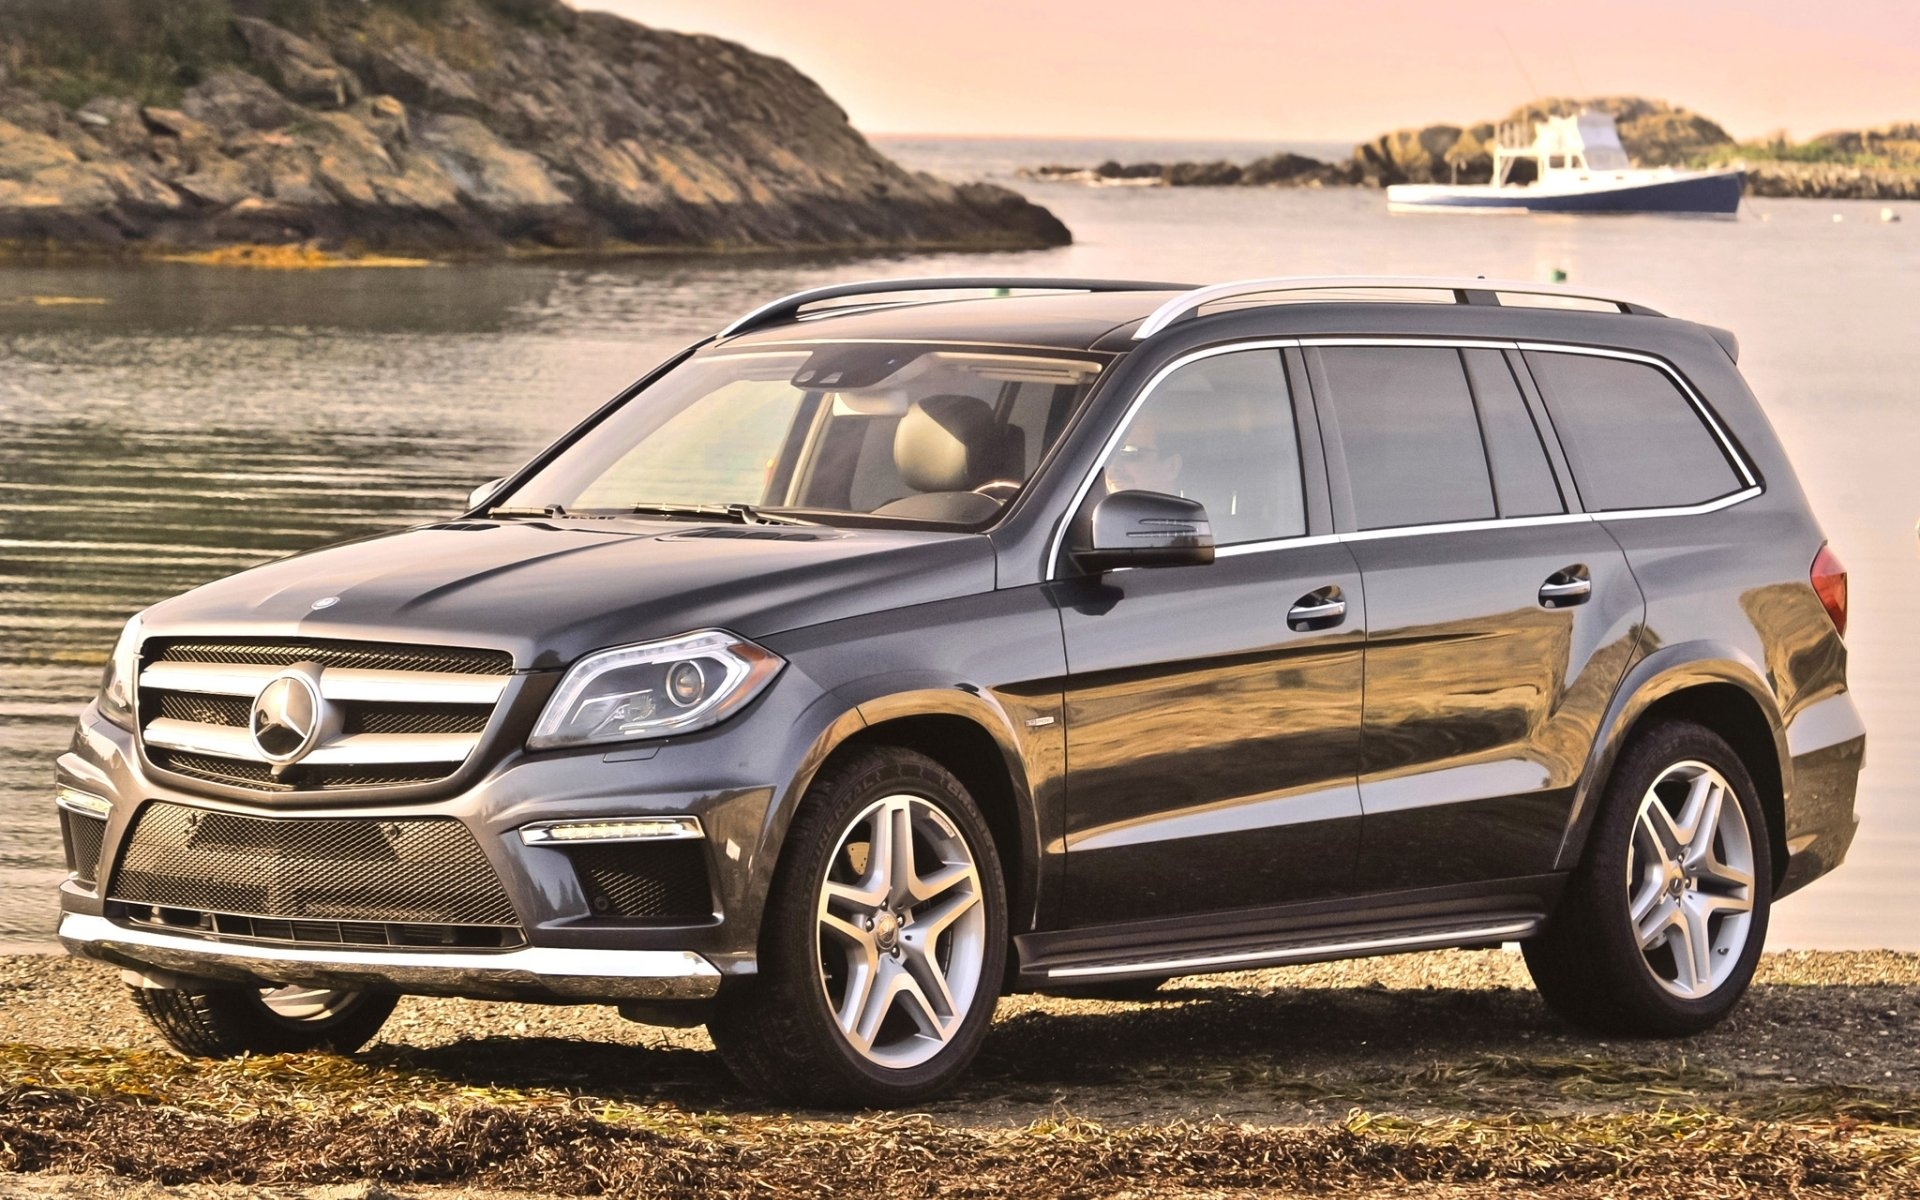 mercedes-benz gl мерседес гл джип передок берег вода катер фон